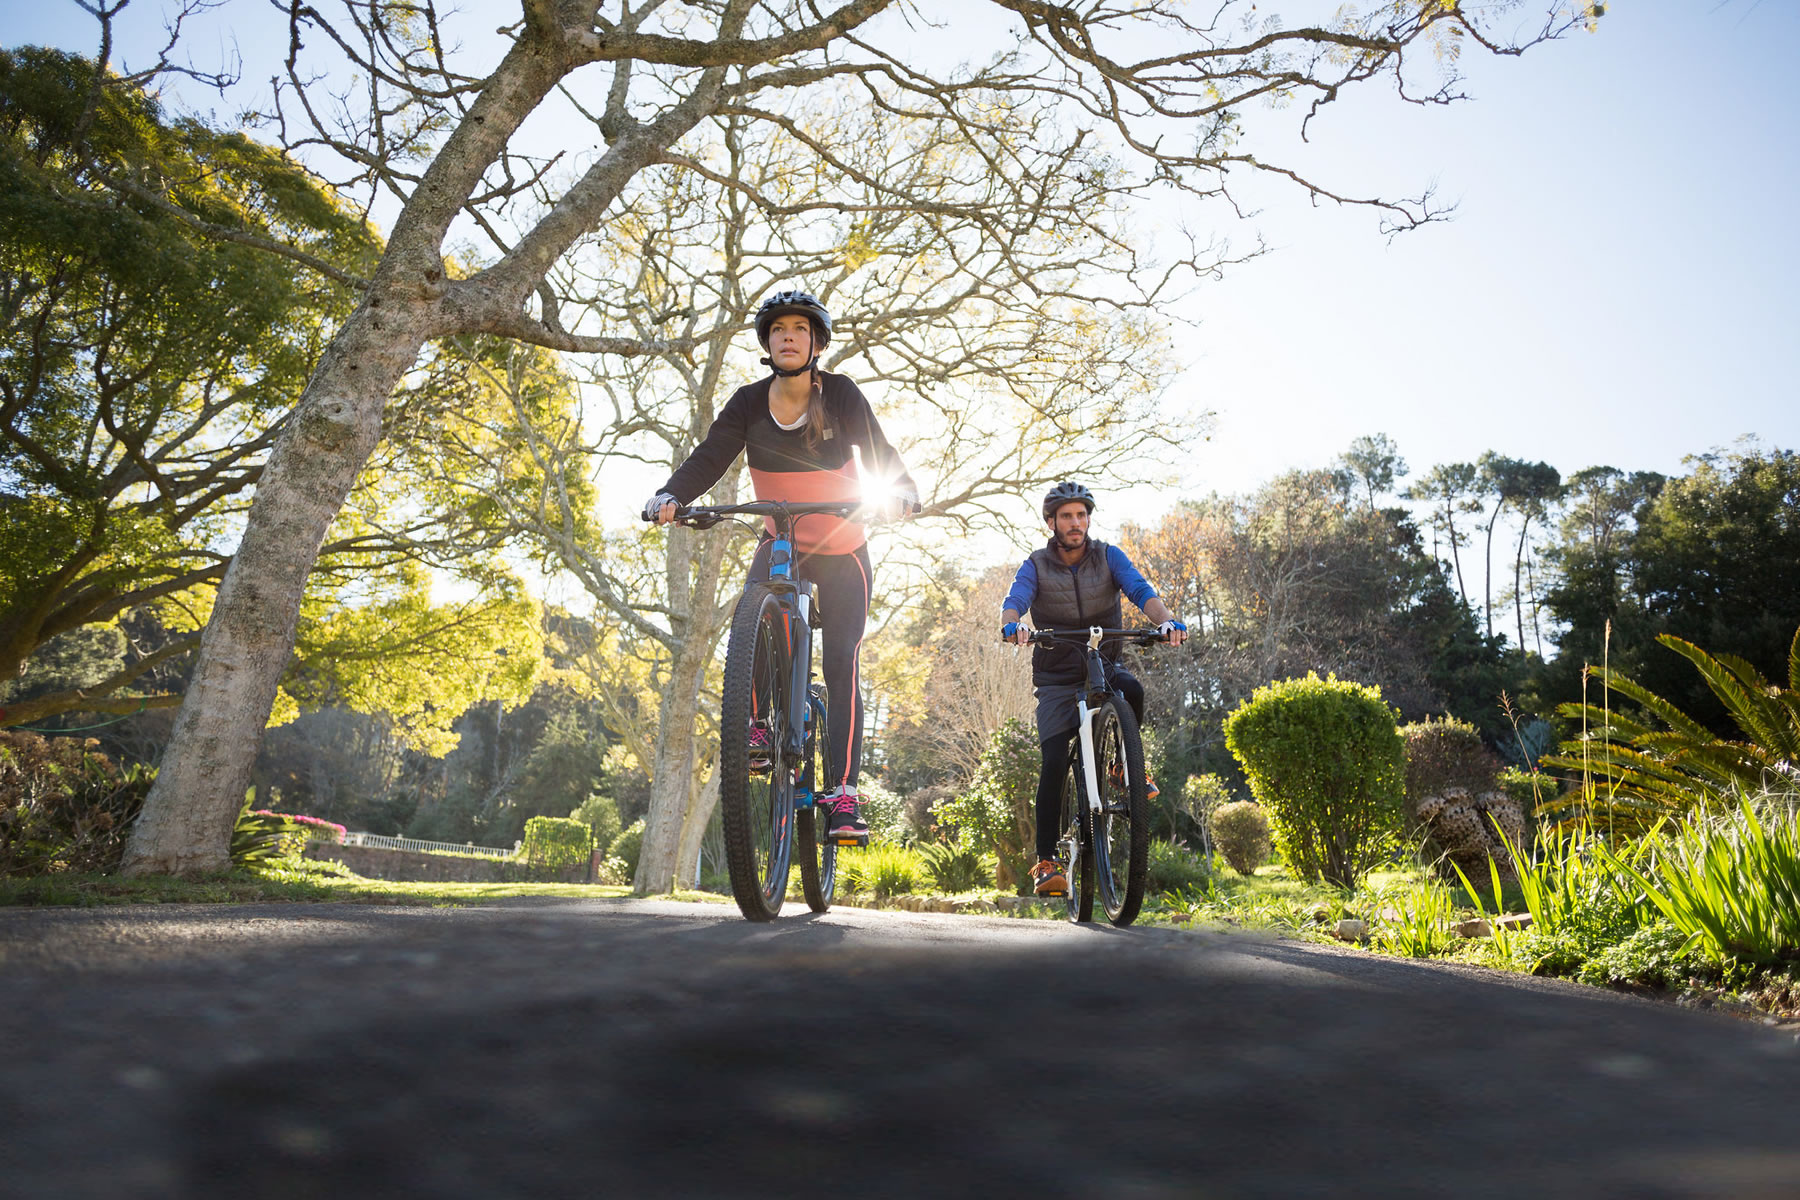 Construction on the shared pedestrian/cycle path along Heath Road Weybridge due to start from the 15th February 2020